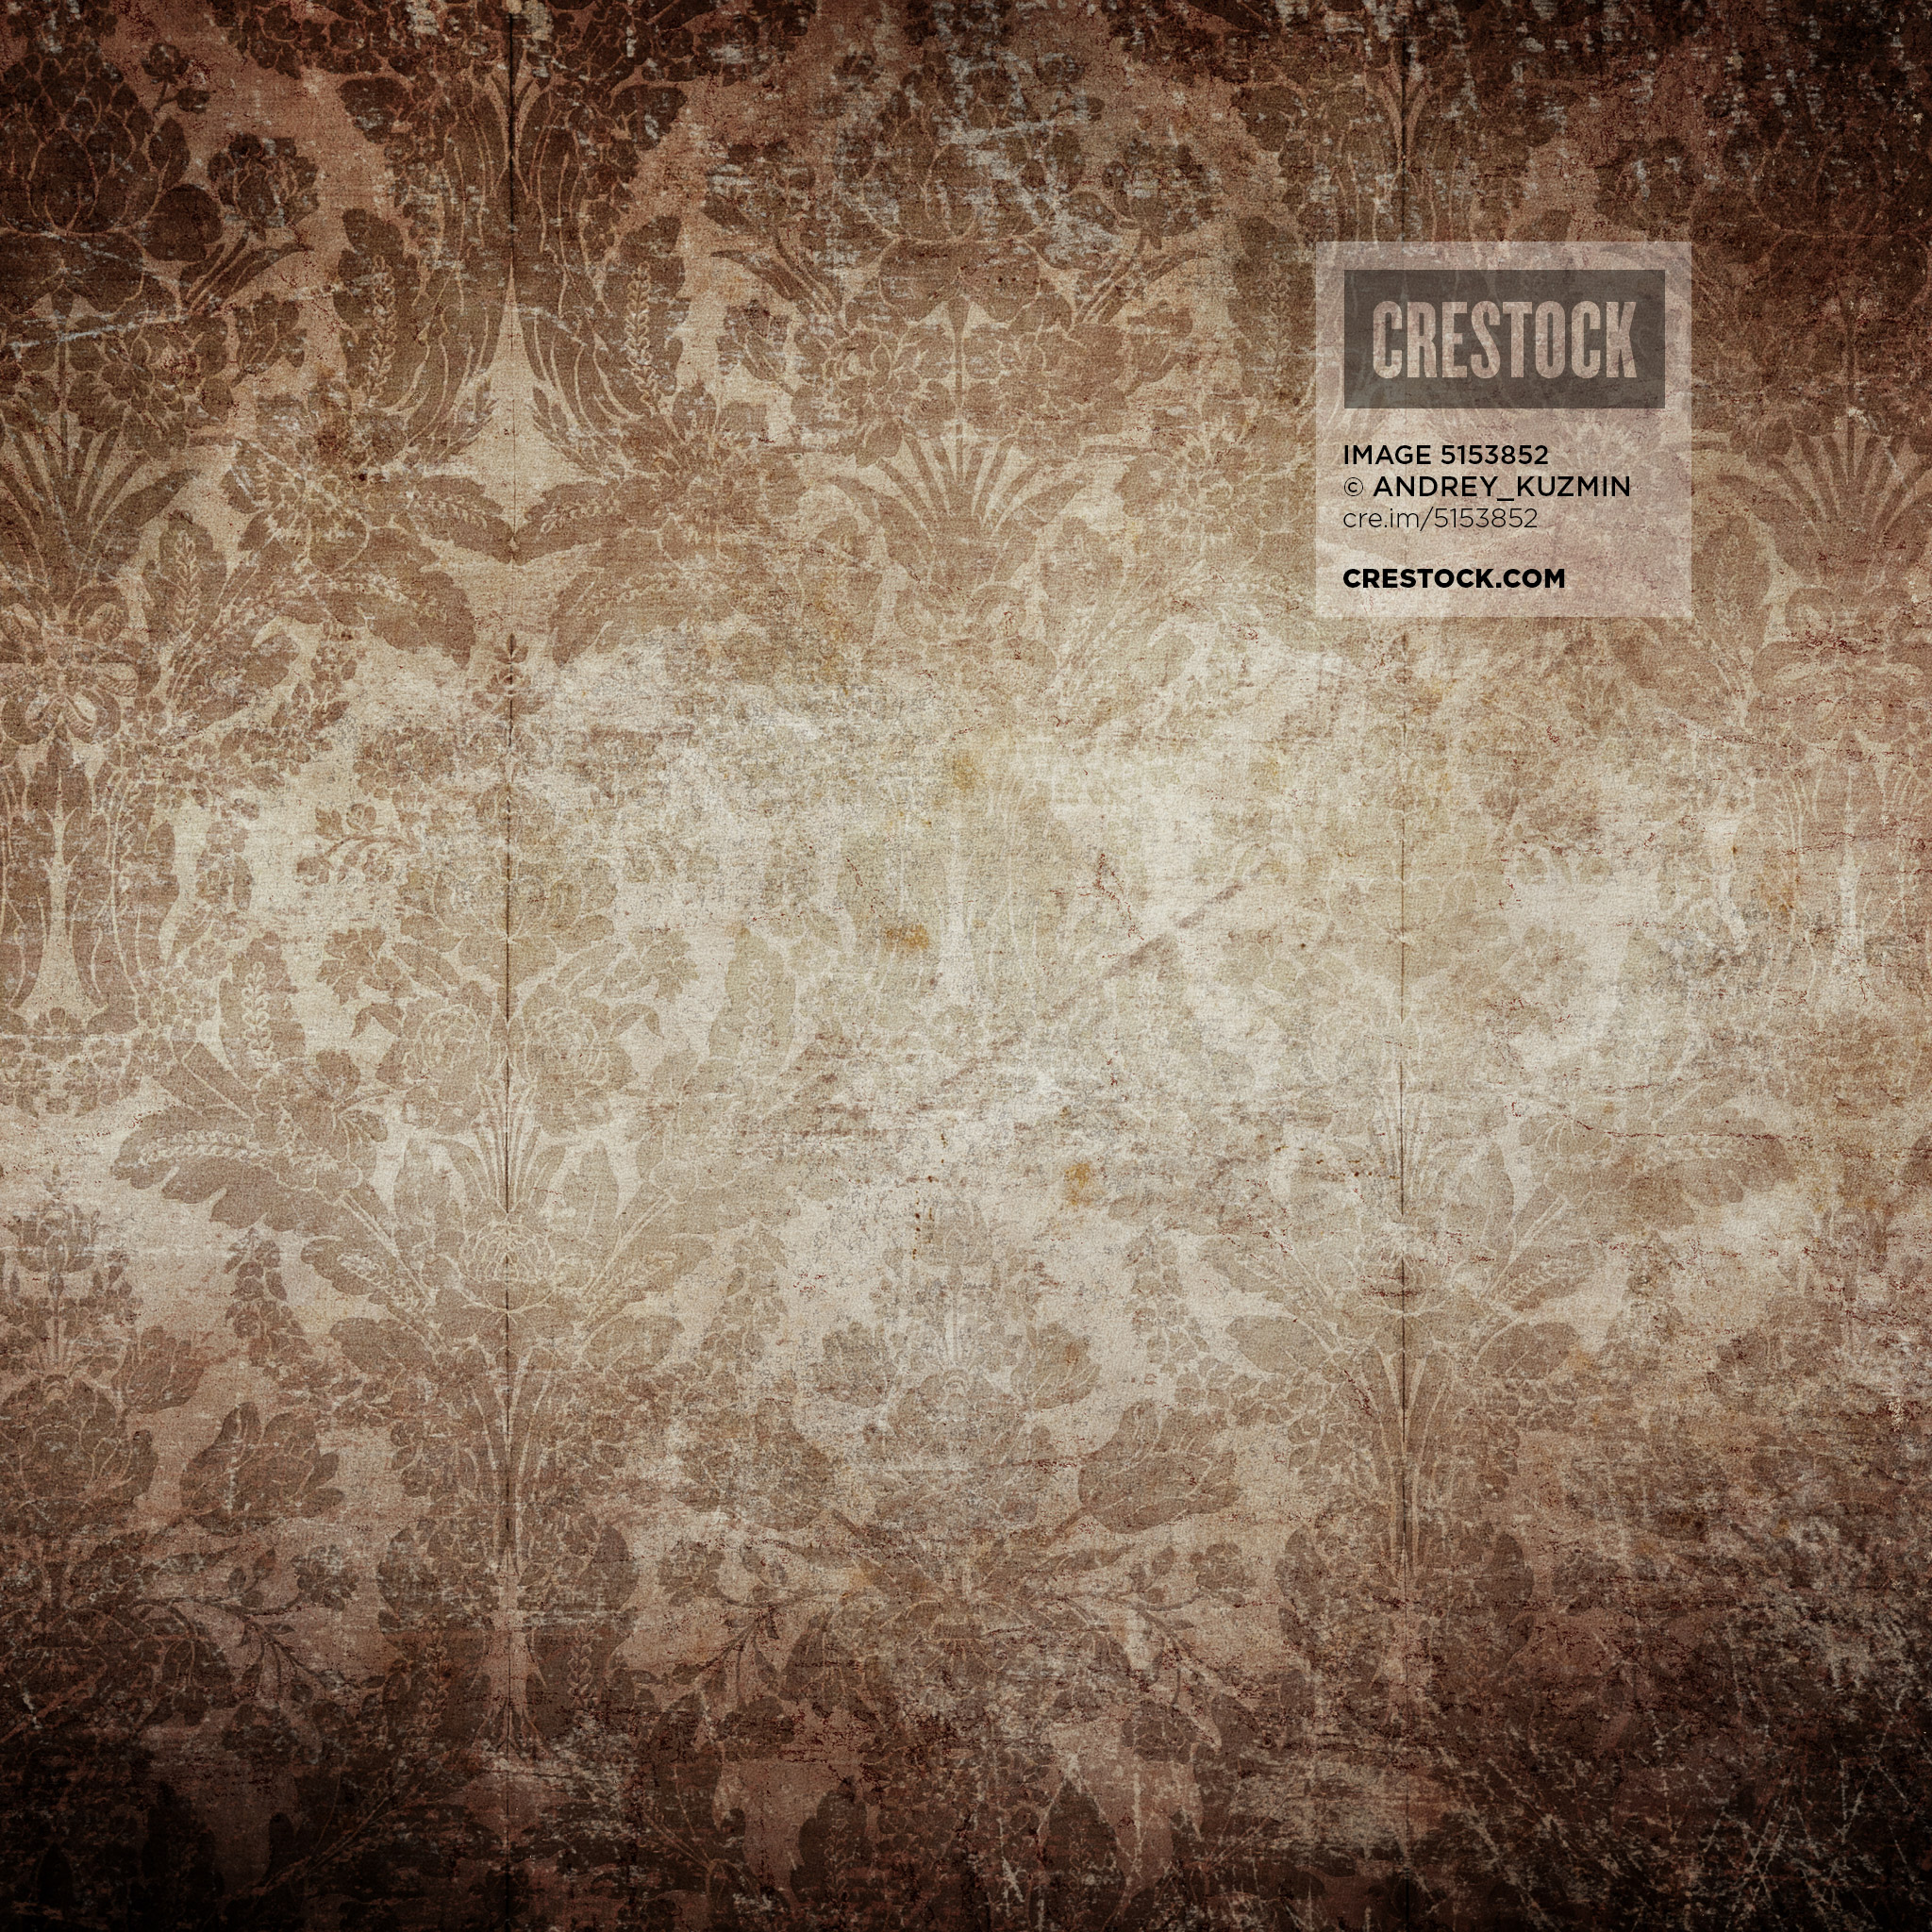 Most Inspiring Wallpaper Home Screen Vintage - Crestock-5153852-2048x2048  Pic_608434.jpg